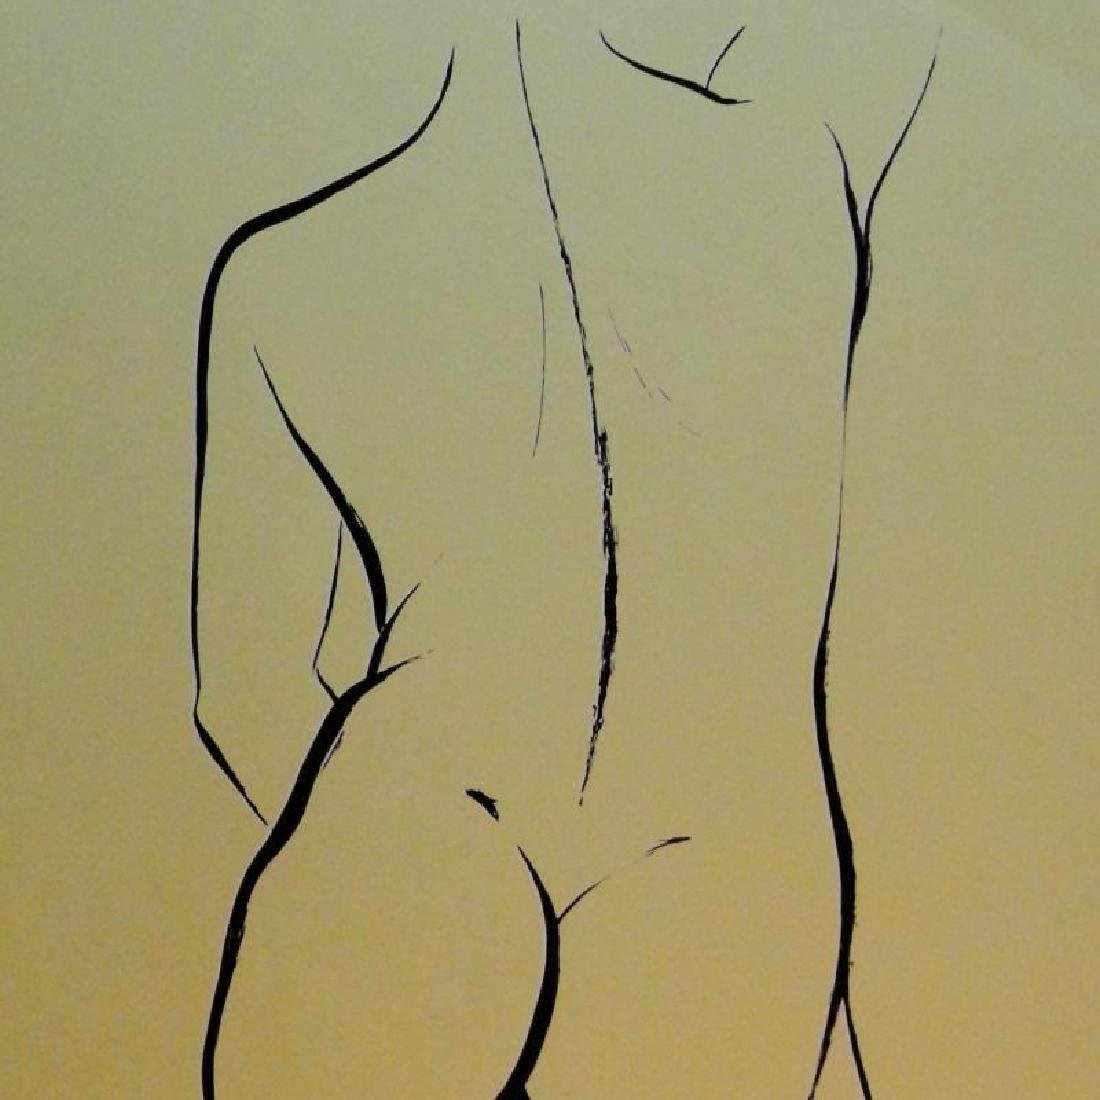 Nude Figure Drawing Signed Limited Edition - 2